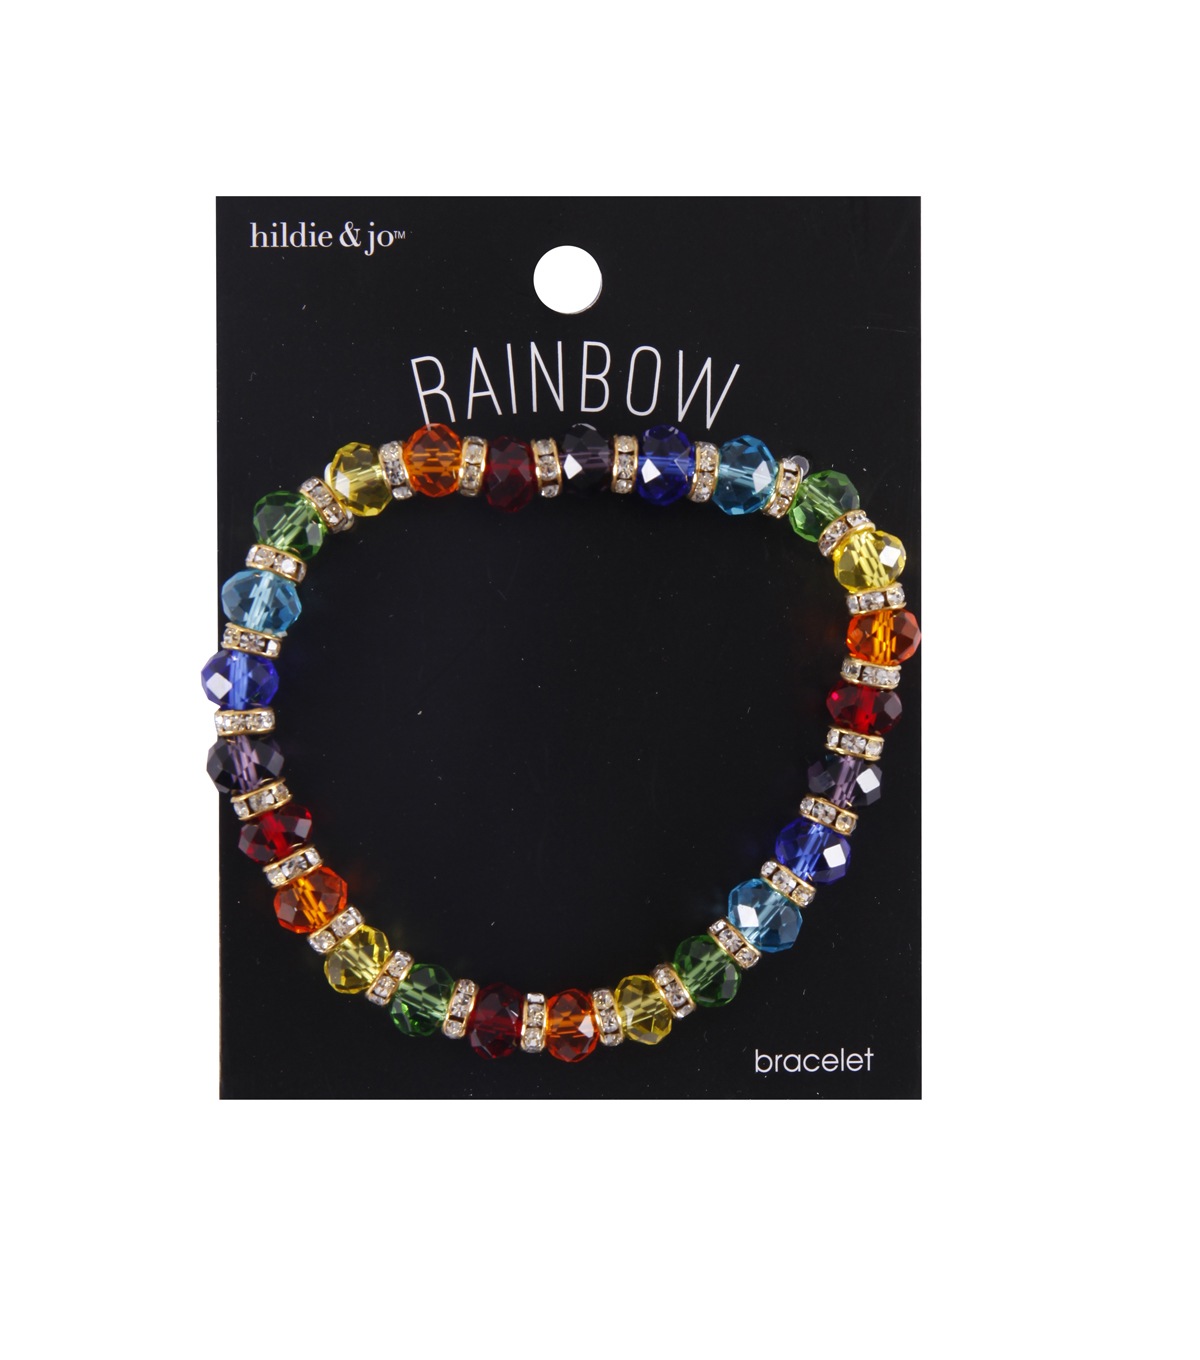 hildie & jo Rainbow Glass Bracelet